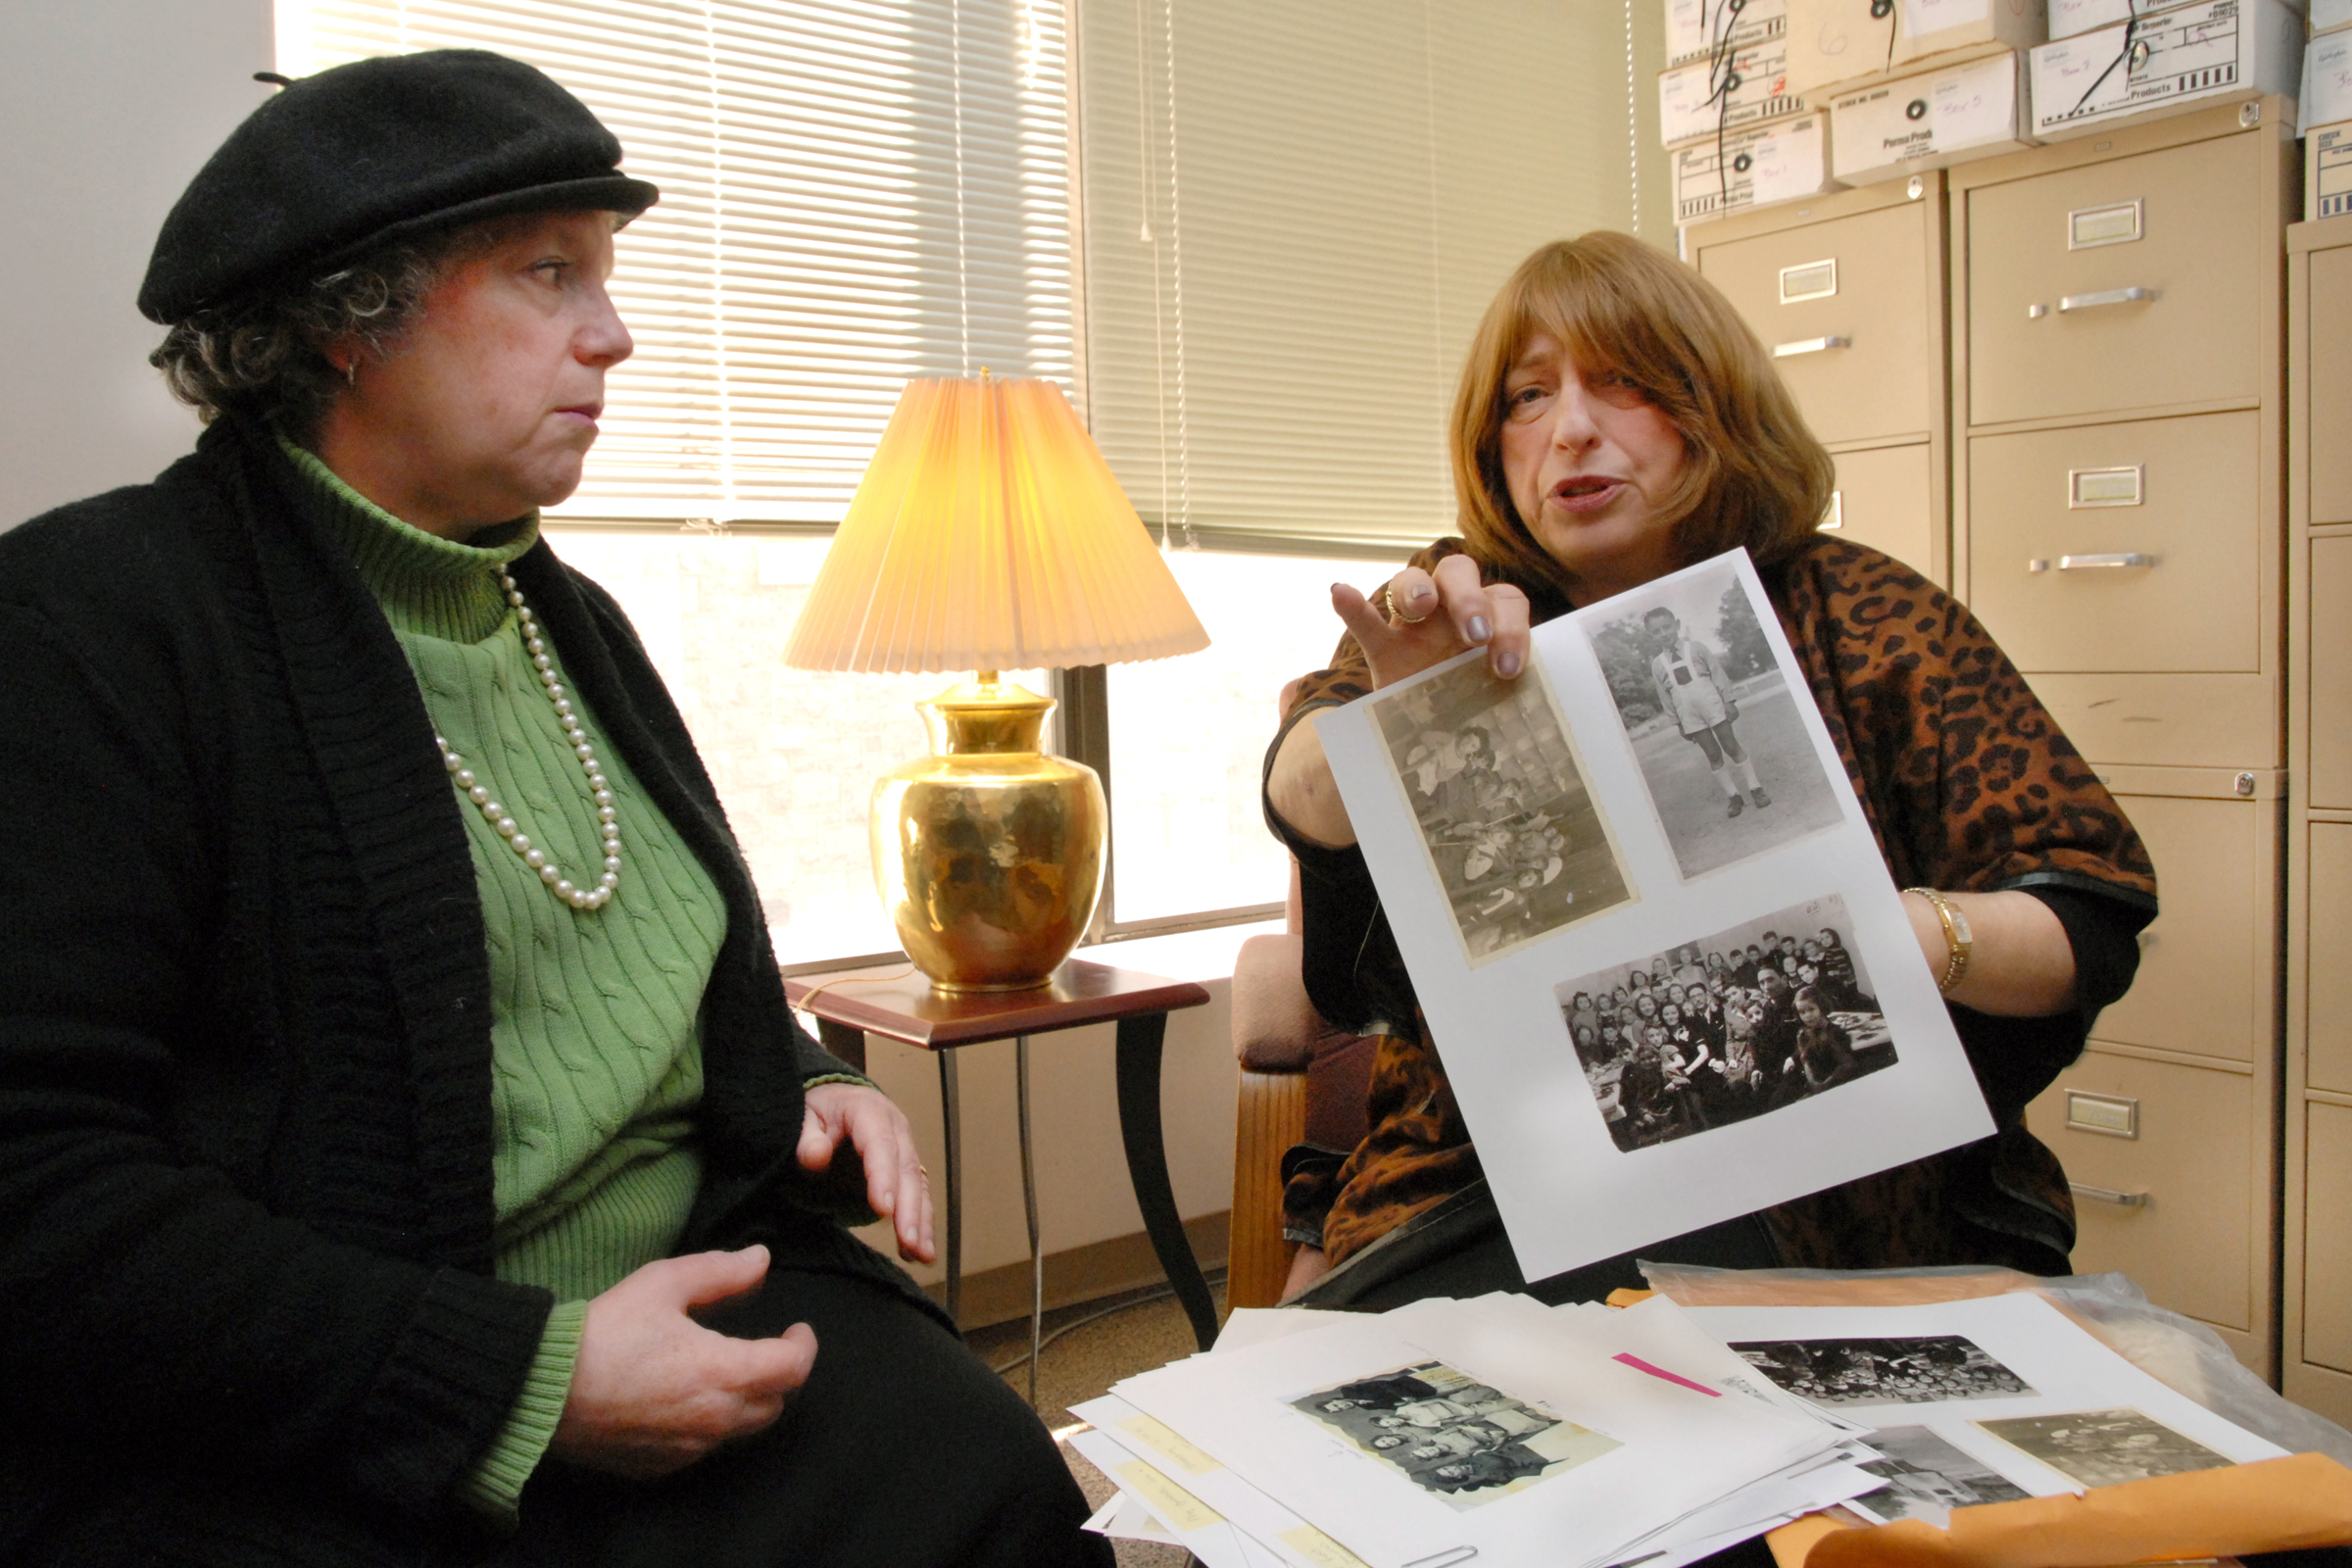 Bea Hollander-Goldfein holds photos of her half brother Jack Hollander, who is a Holocaust survivor, while Nancy Isserman looks on. The two are co-directors of the Transcending Trauma Project.